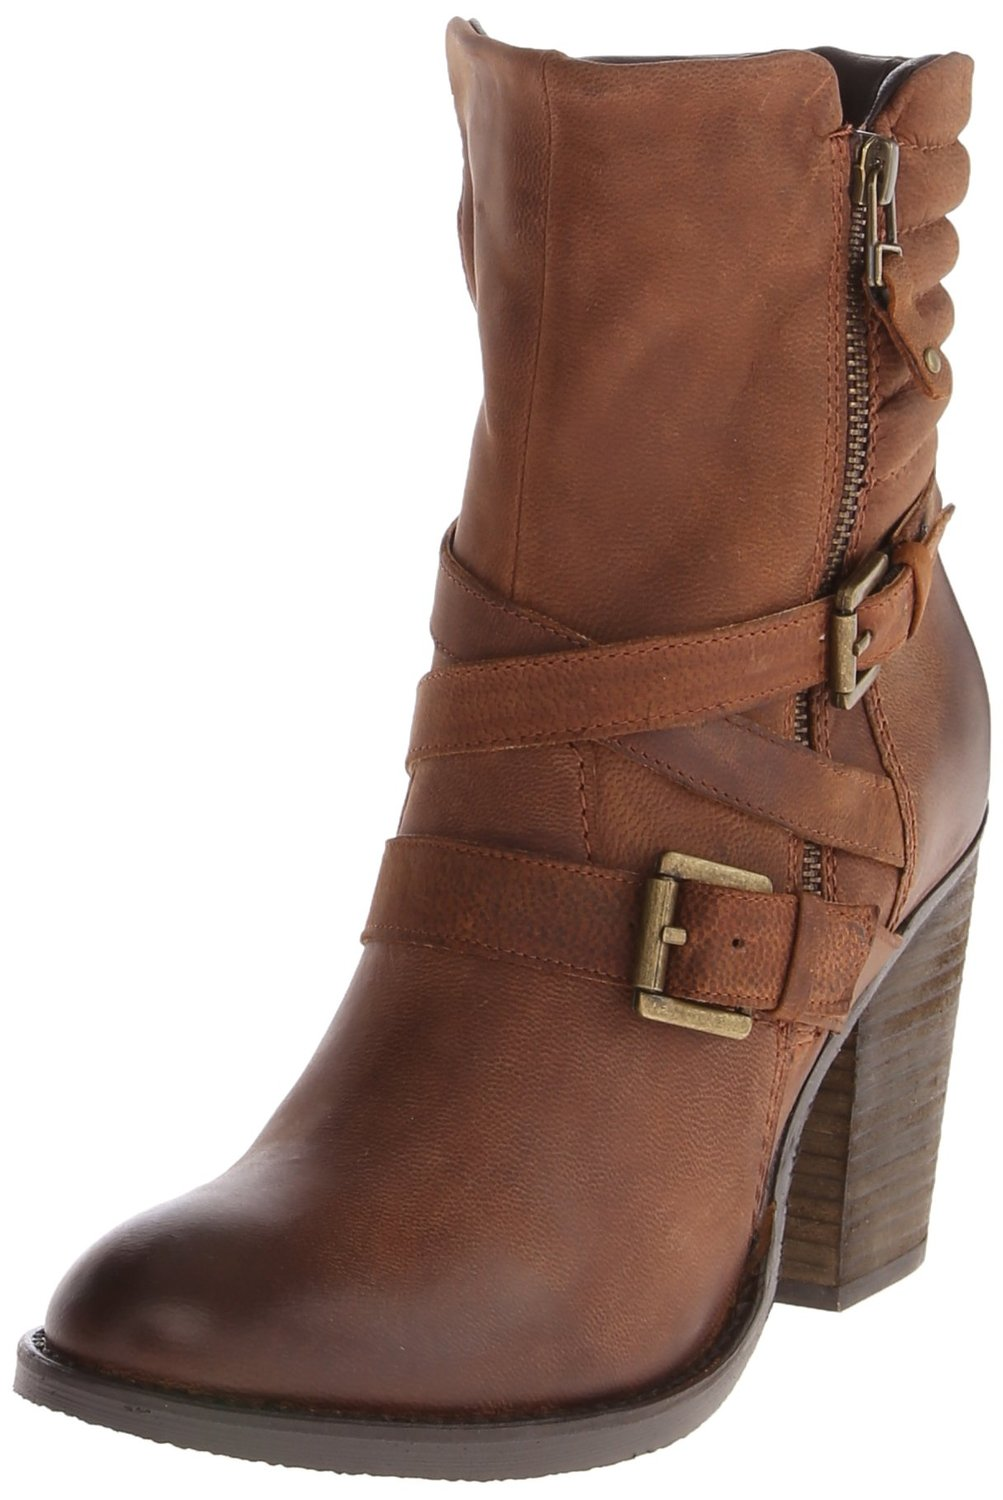 See the latest Steve Madden boots, shoes, handbags and accessories at Steve staffray.ml Save with Free Shipping & free in-store returns.